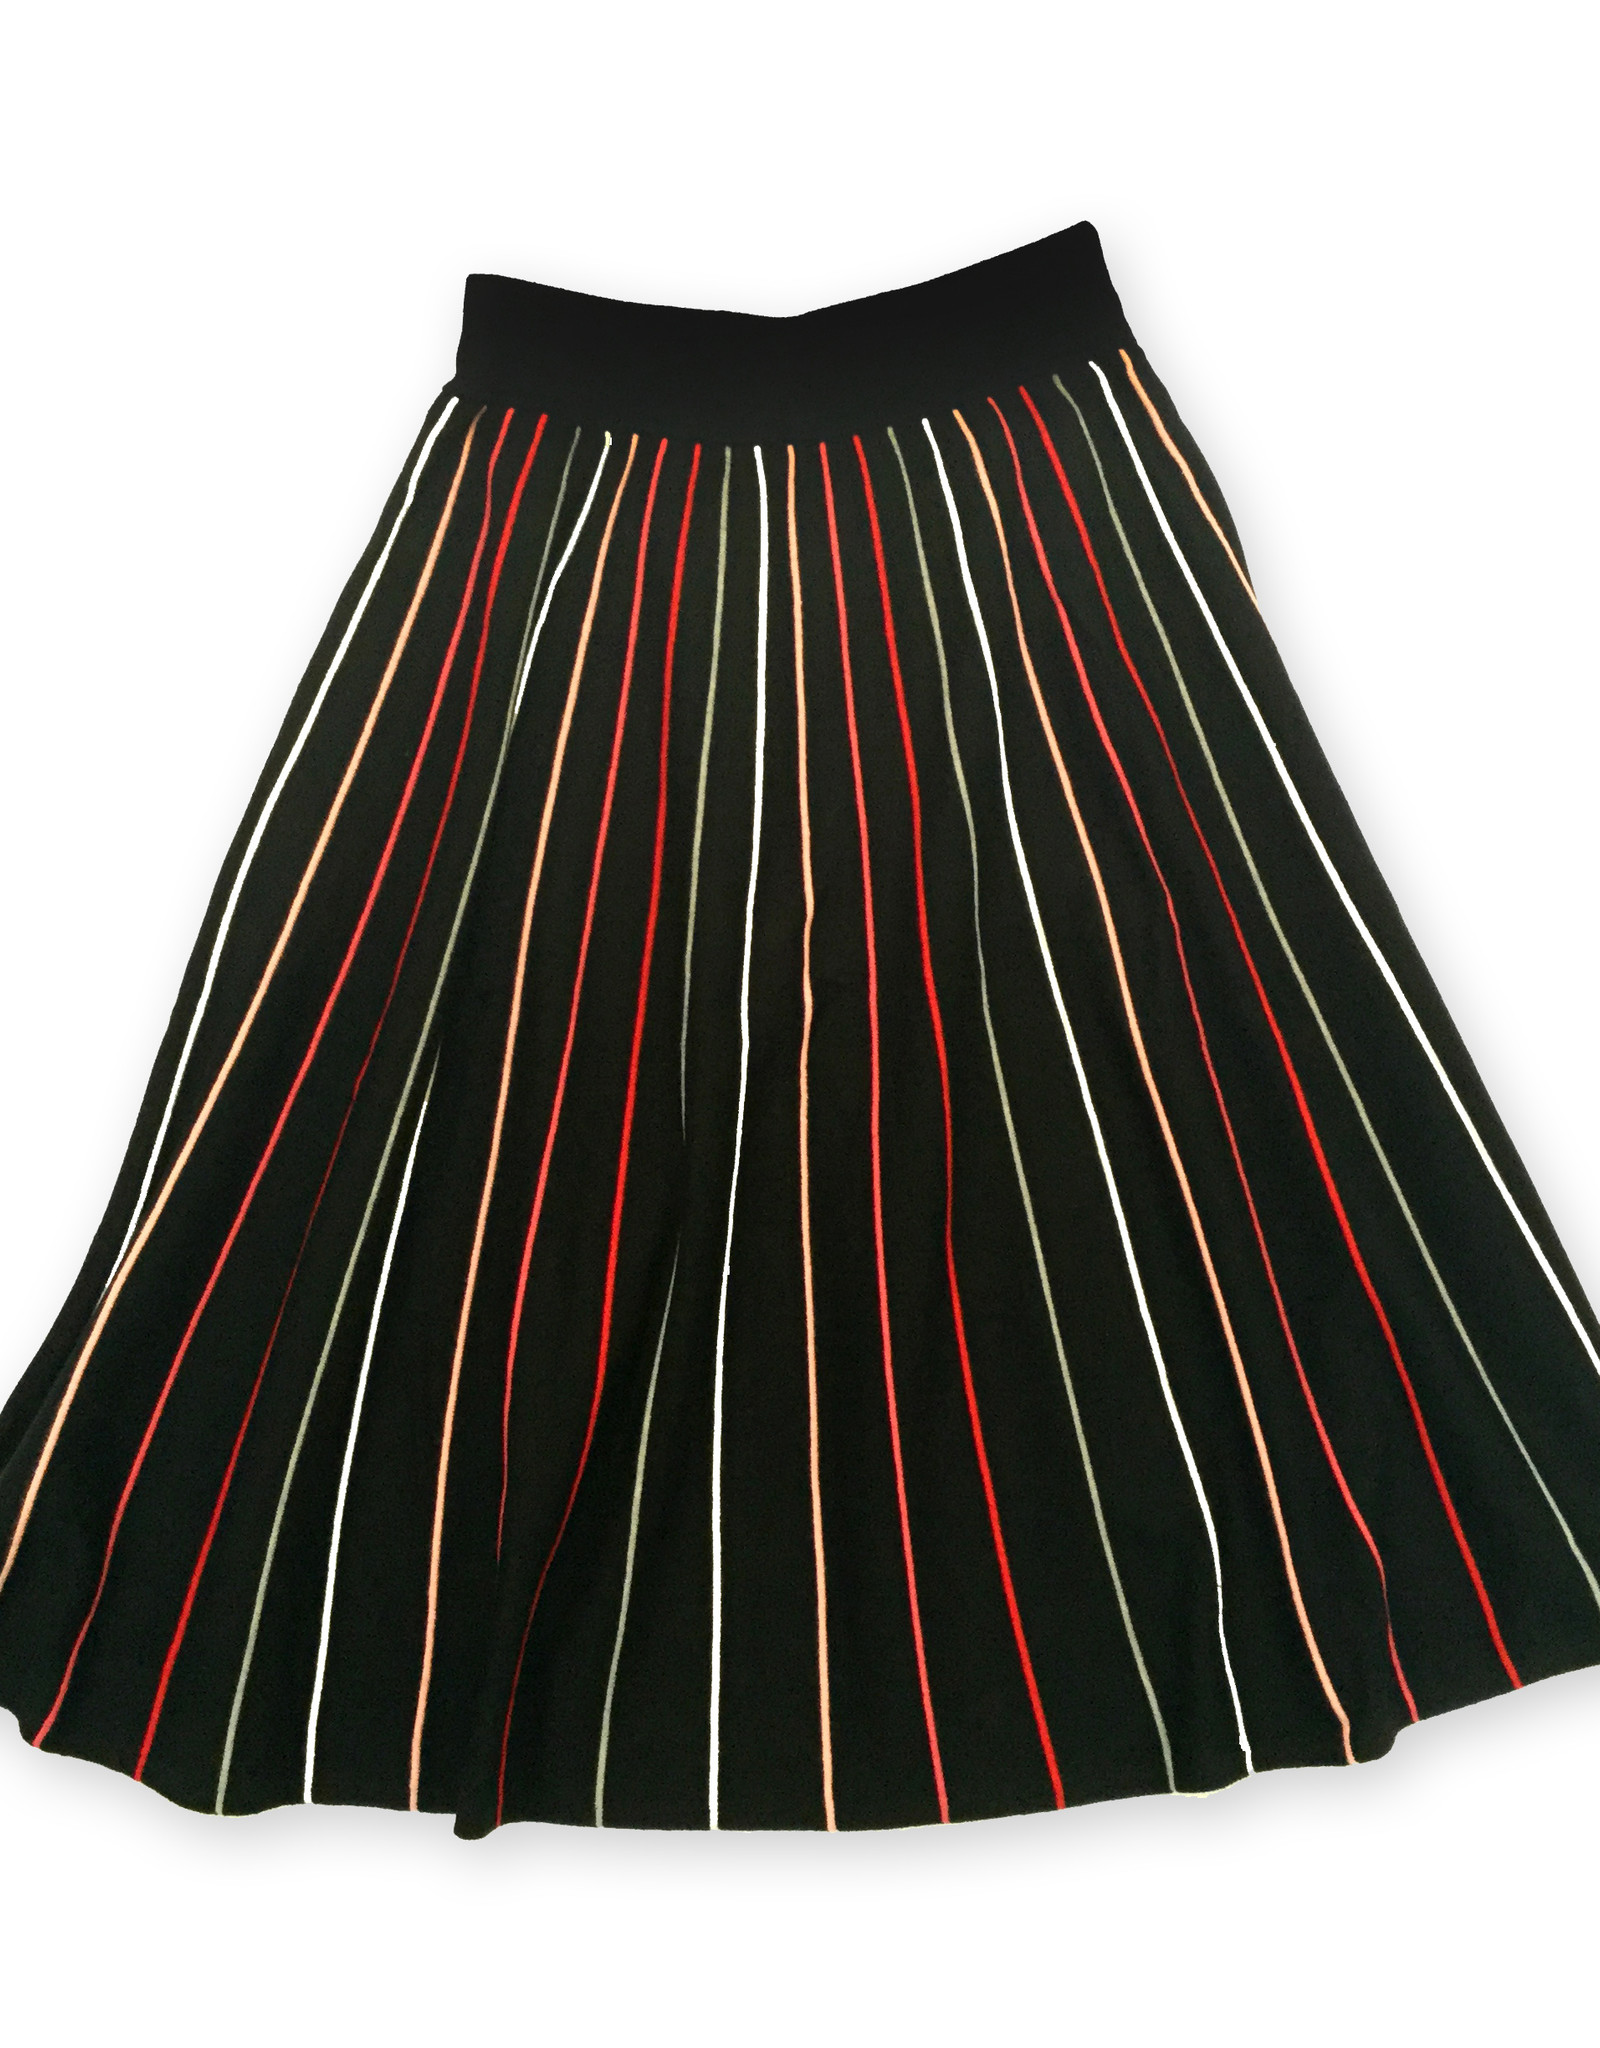 Noni Noni Multicolor Knit Skirt